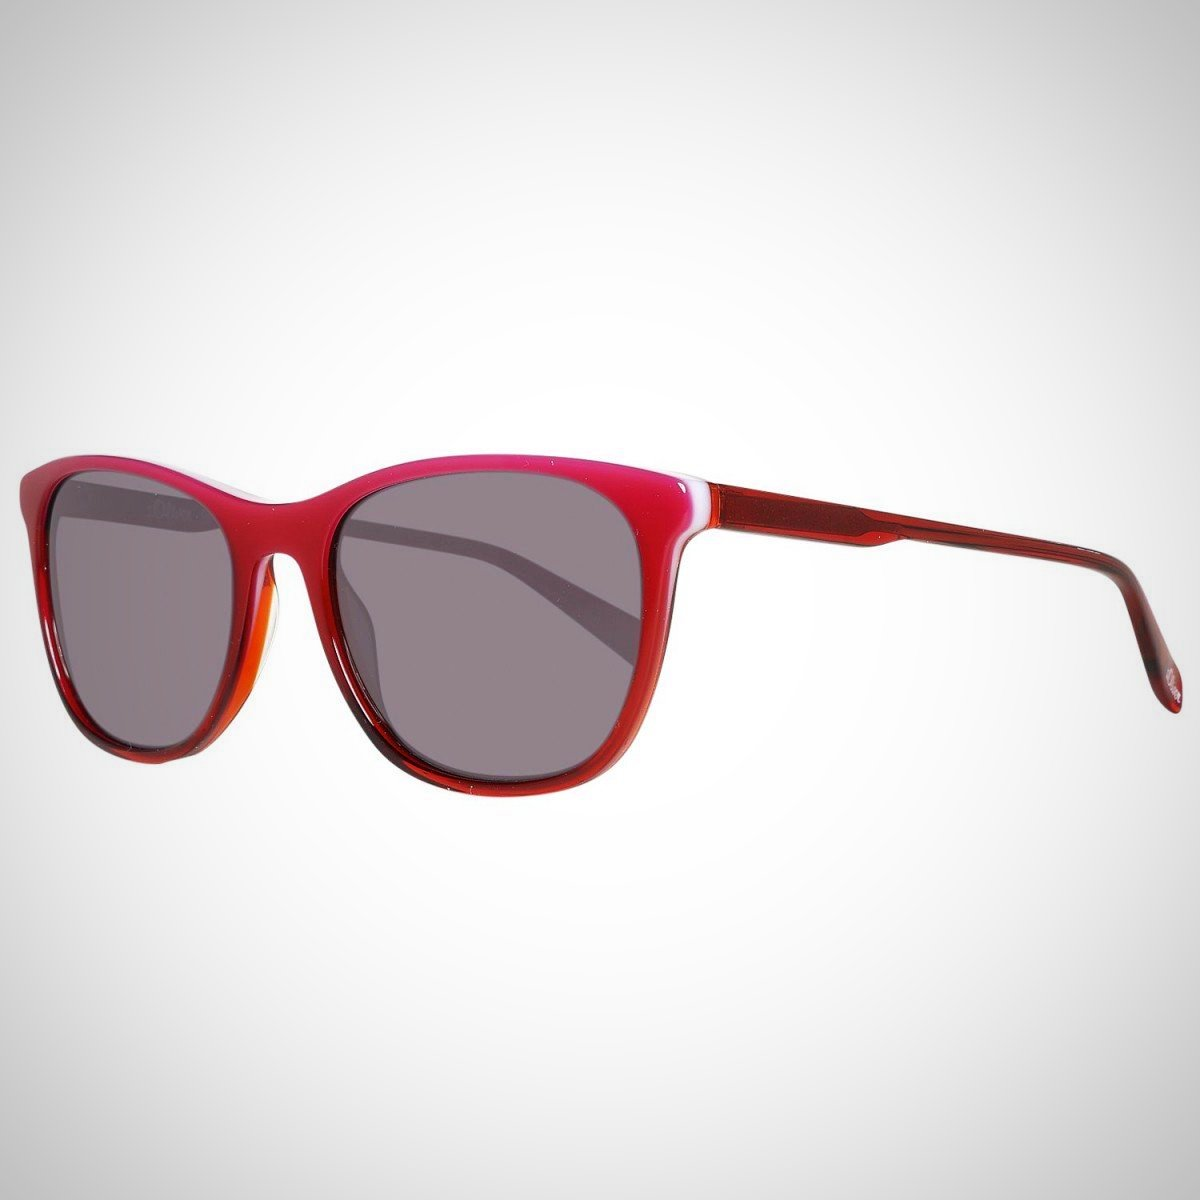 S. Oliver 98697 900 Ladies Red Frame Sunglasses